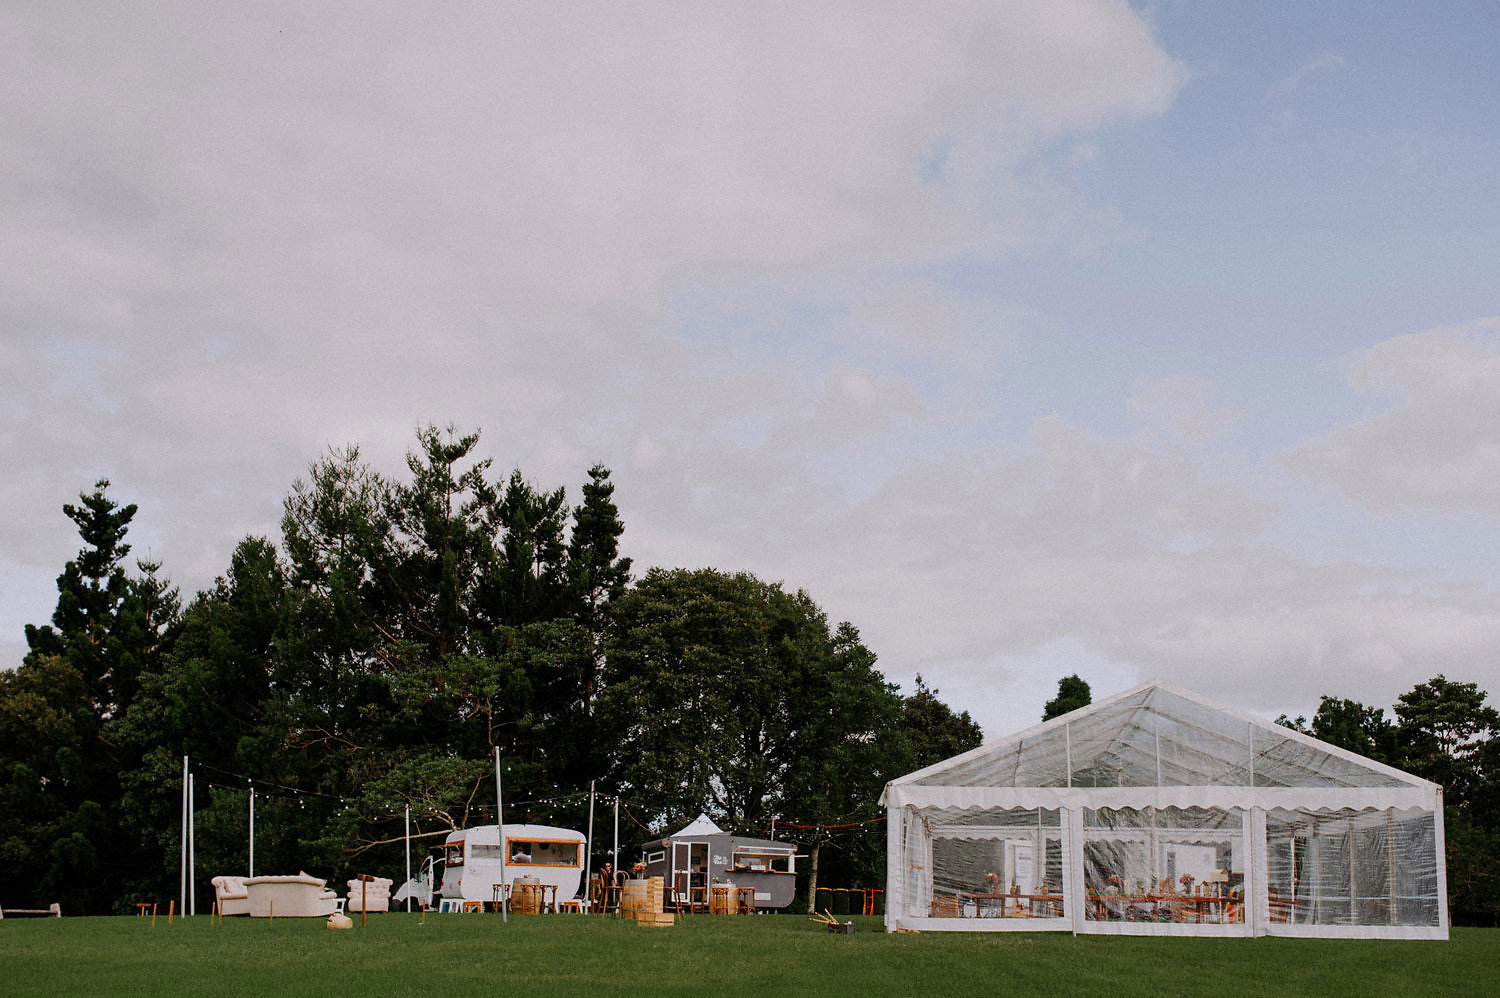 9m x 15m clear marquee at maleny 2 (Ash and Stone Photography).jpg